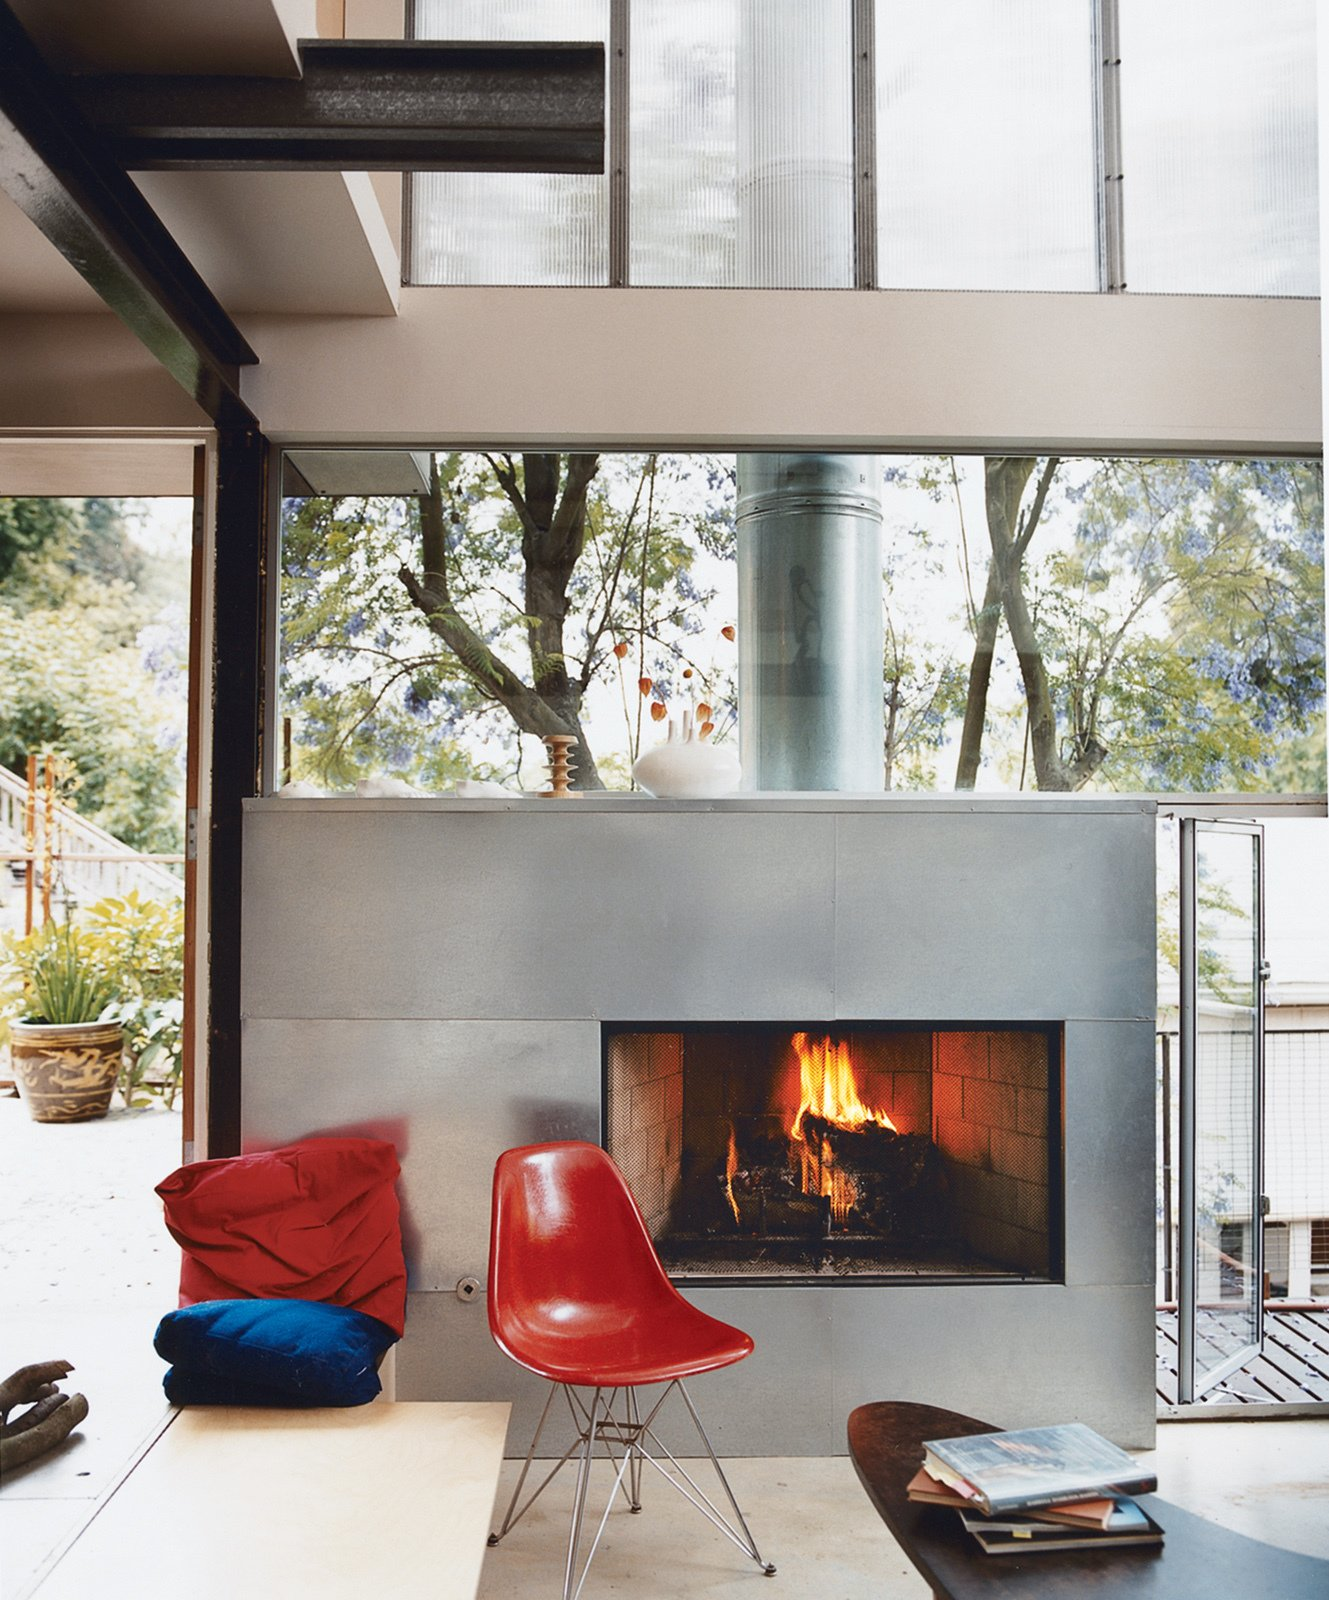 Living Room, Chair, Bench, Coffee Tables, Standard Layout Fireplace, and Wood Burning Fireplace Galvanized steel was used to clad the fireplace.  97+ Modern Fireplace Ideas from How This Couple Broke The Rules in a LA Suburb